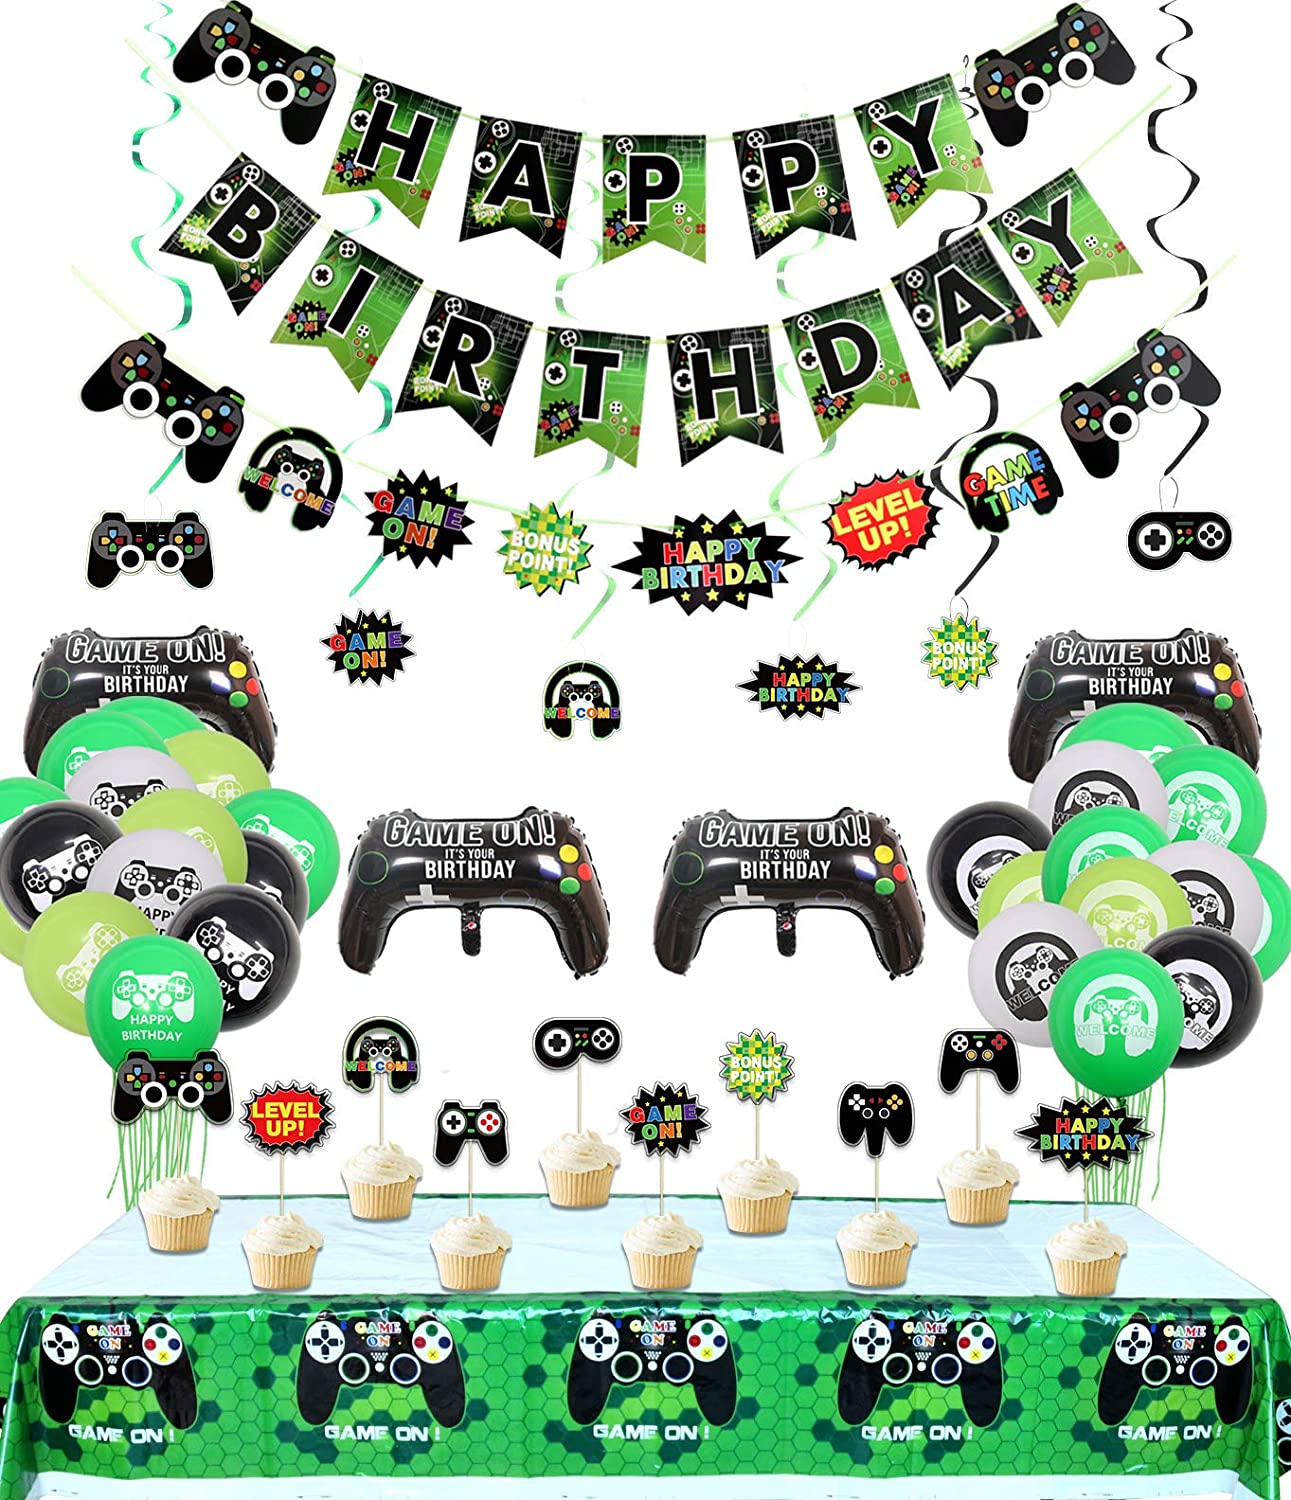 Video Game Party Decorations, 3 Set HAPPY BIRTHDAY Gaming Banner, 1 Pcs Table Cloth, 6 Pcs Hanging swirls, 10 Pcs Cake Topper and 24 Pcs Game Themed Balloons for Gamer, Boys Birthday Party Supplies